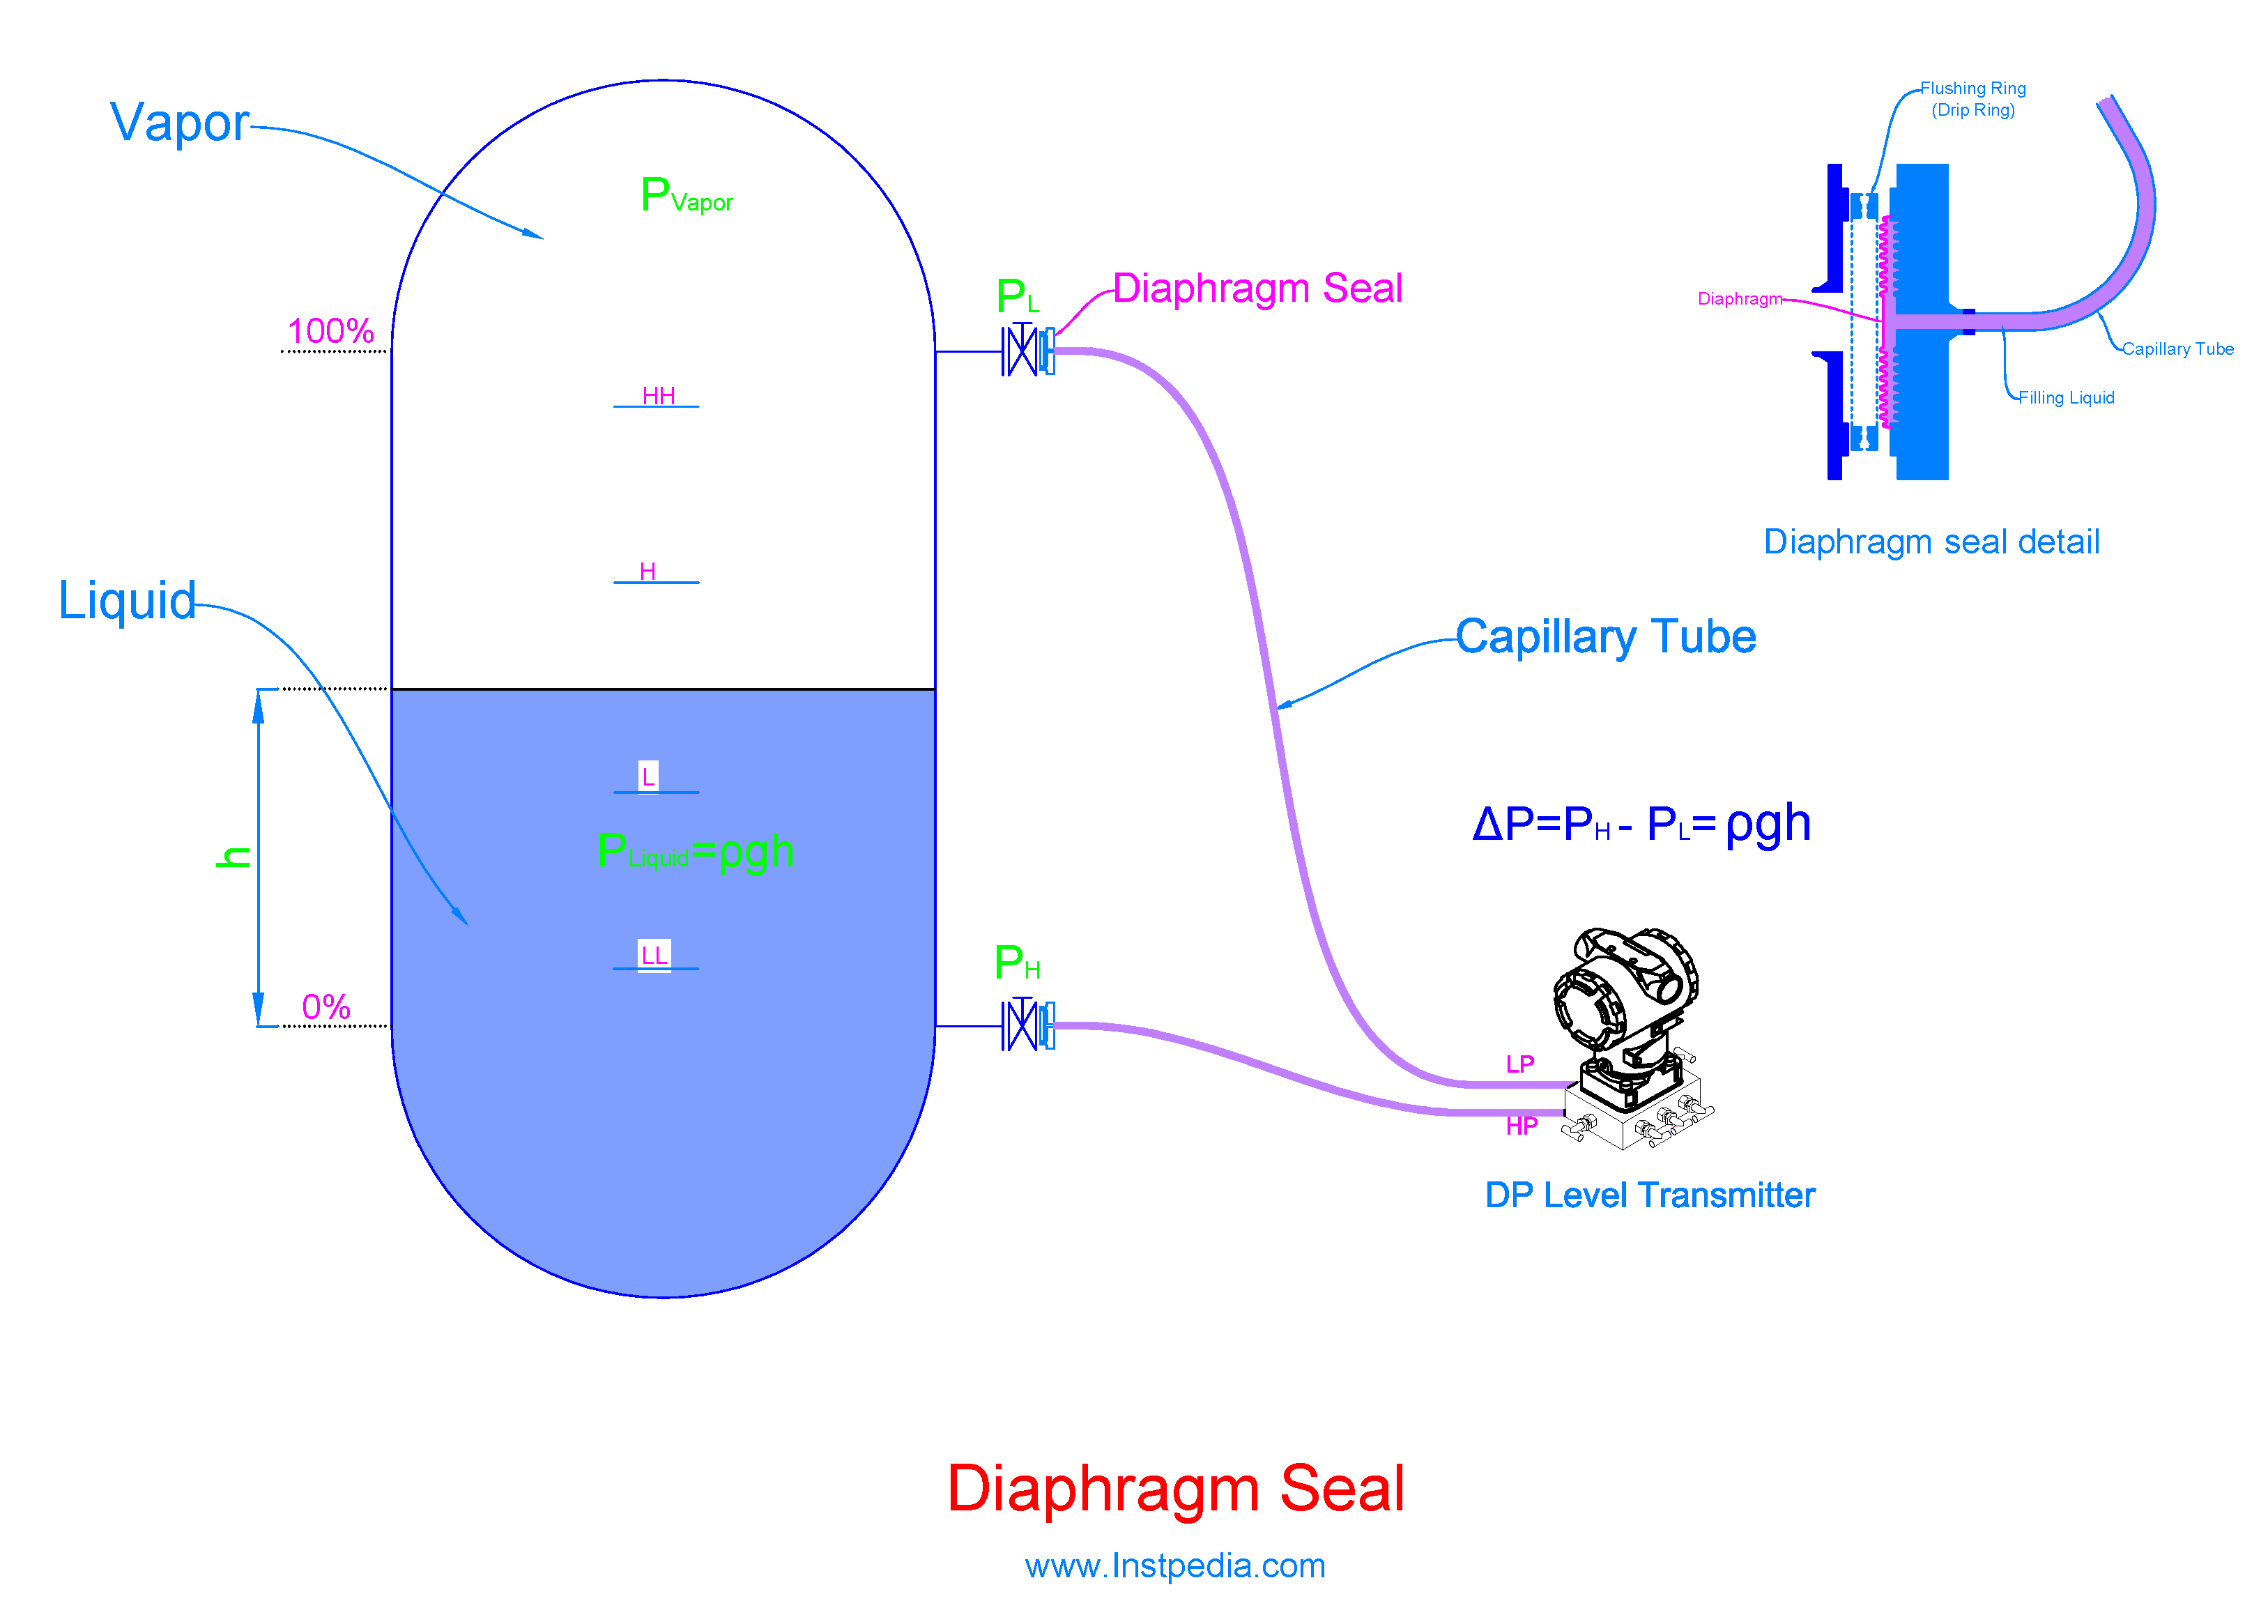 Diaphragm Seal with Capillary Tube